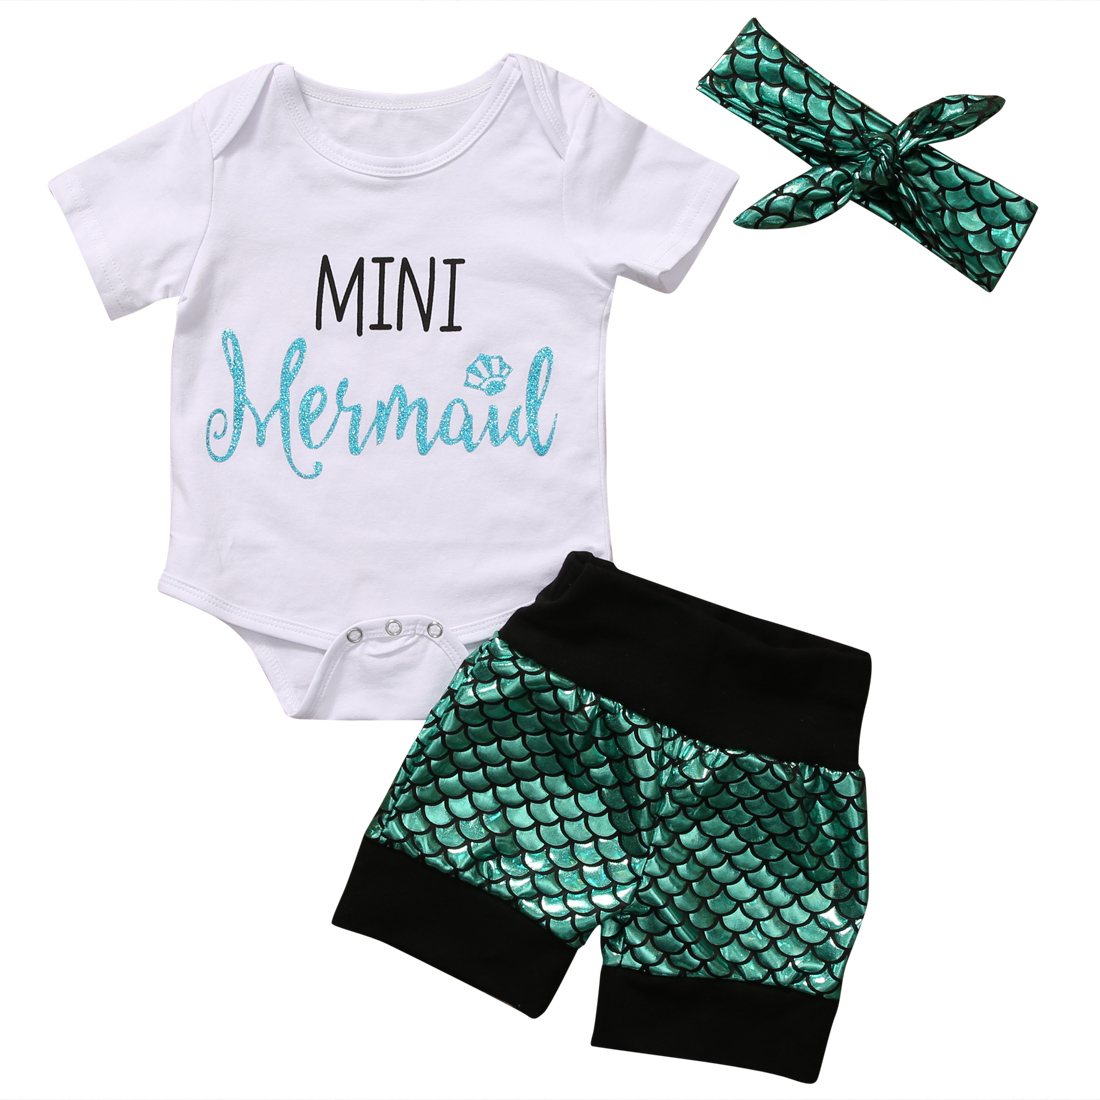 3PCS Mini Mermaid Newborn Baby Girl Clothes 2017 Summer Short Sleeve Cotton Romper Bodysuit+Sea-Maid Bottom Outfit Clothing Set 3pcs newborn baby girl clothes set long sleeve letter print cotton romper bodysuit floral long pant headband outfit bebek giyim